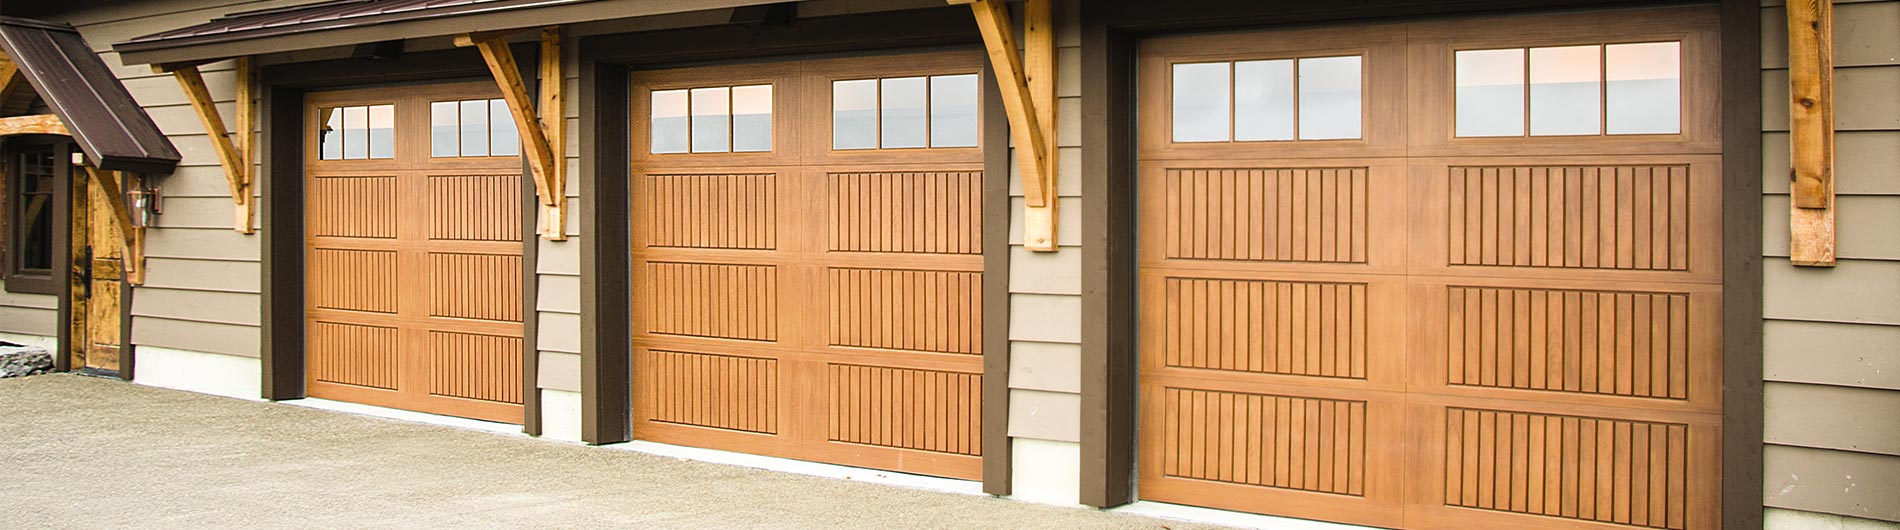 Garage Door Repair Jackson Mi Residential Doors Door Installation Battle Creek Mi